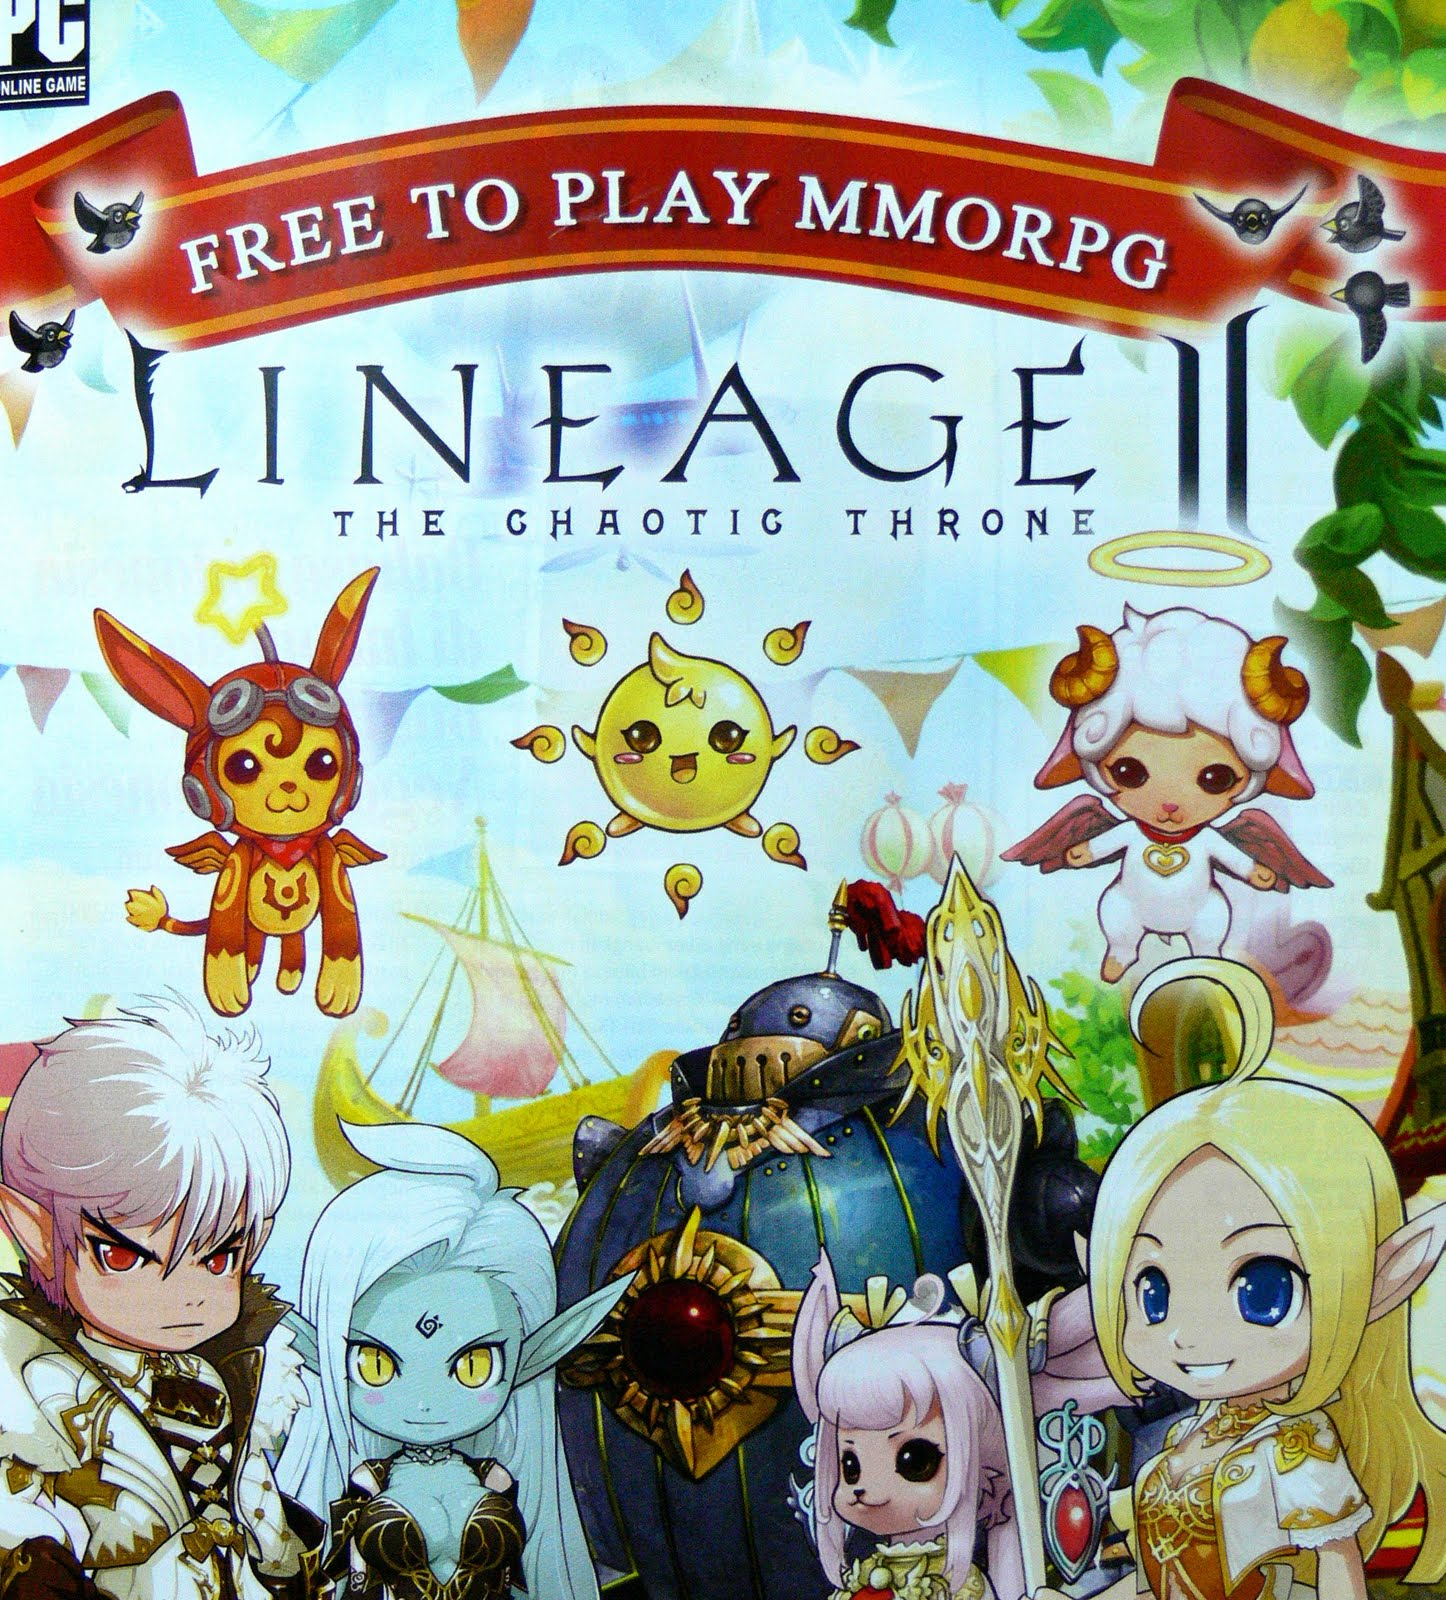 You can free play game online